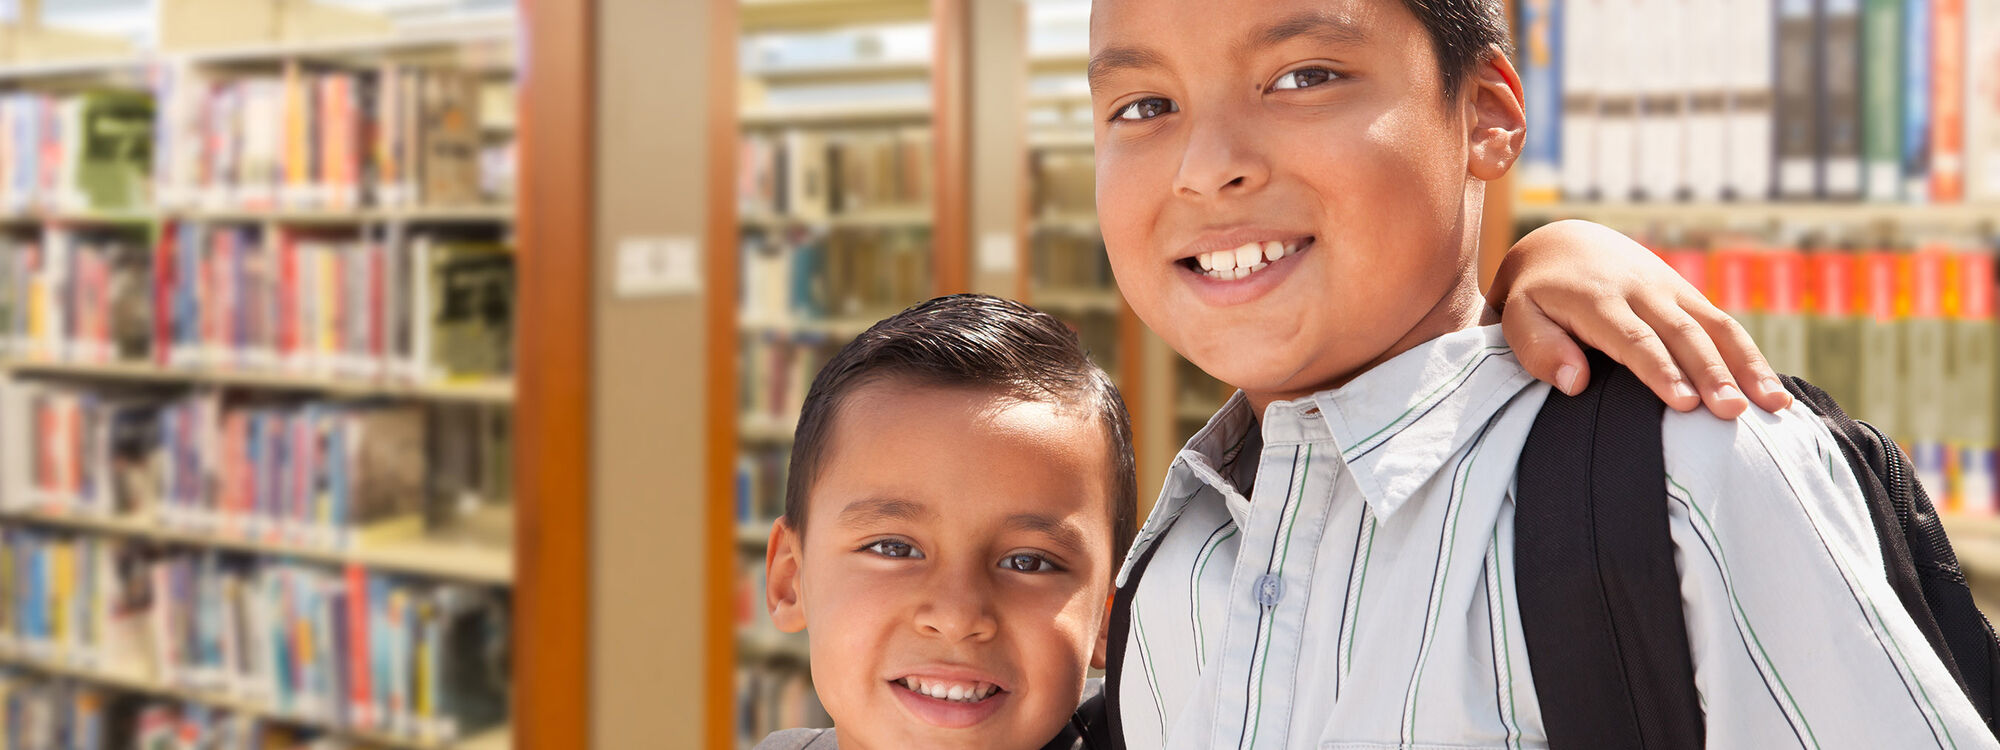 Green Card Voices - two children wearing backpacks in a library